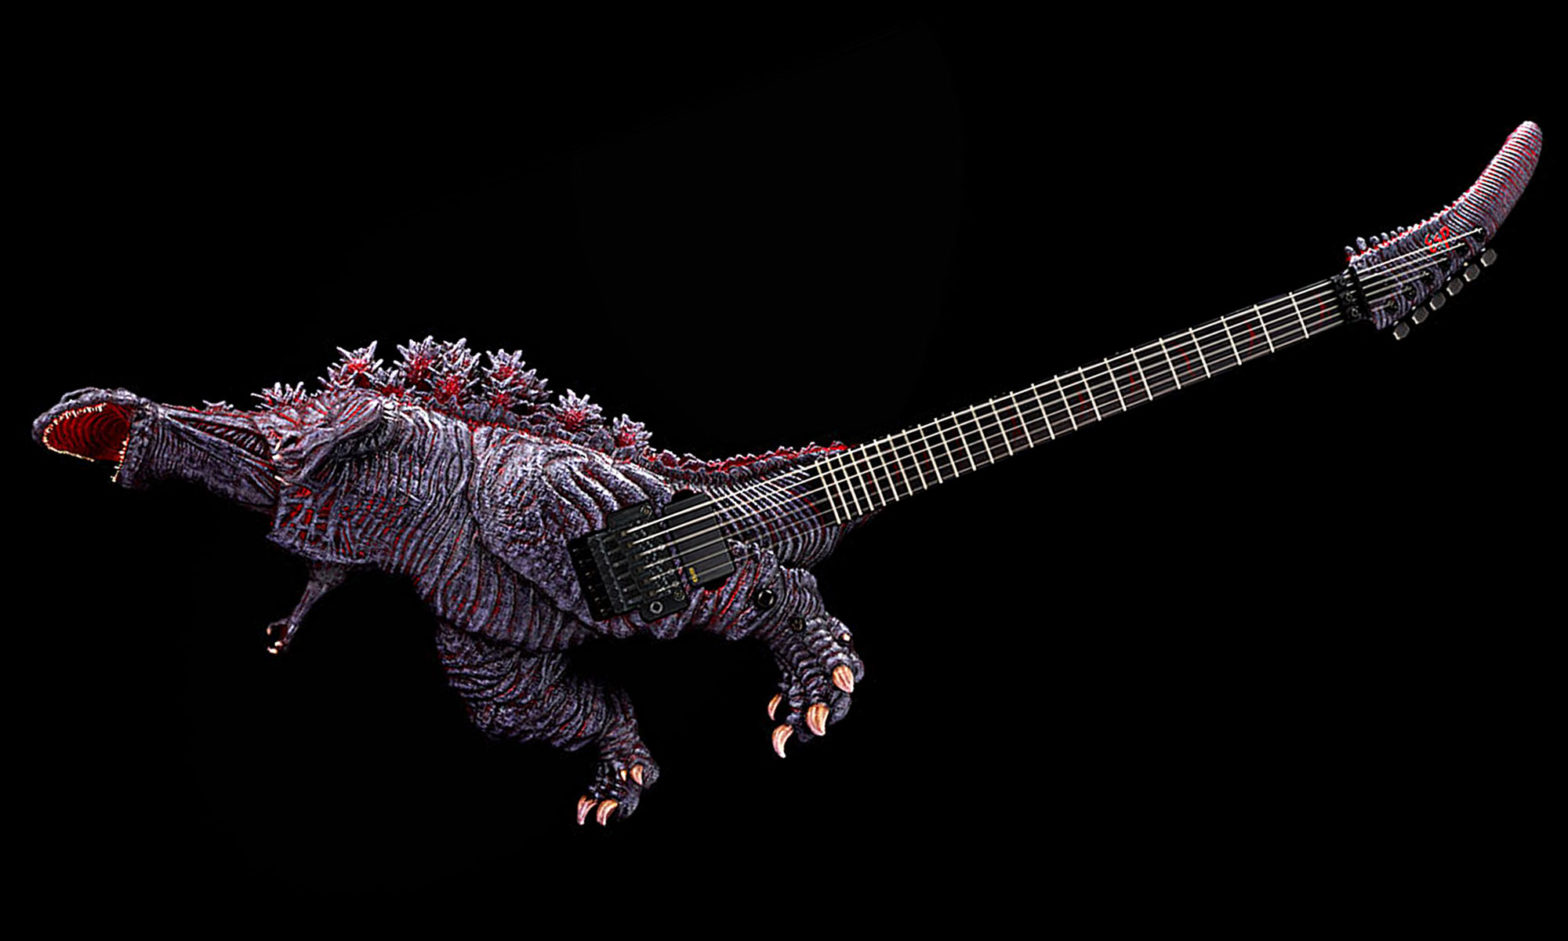 ESP Godzilla Guitar Awakening Version